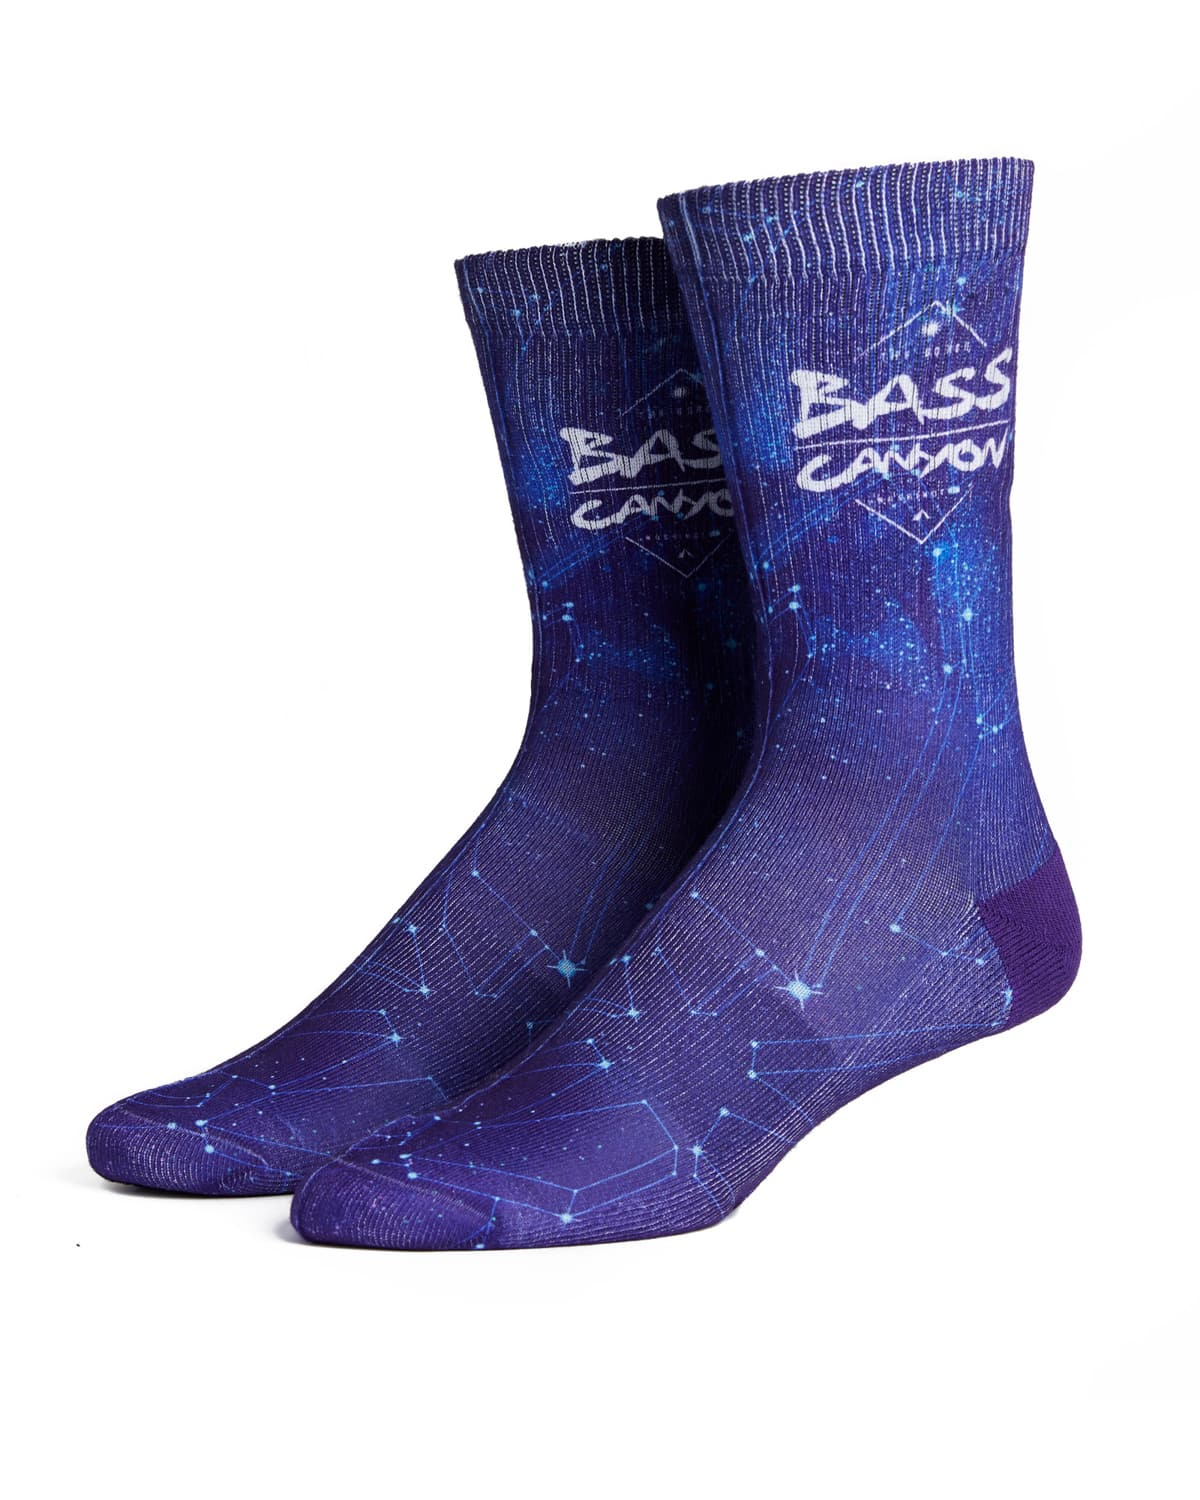 Bass Canyon 'Midnight' Socks